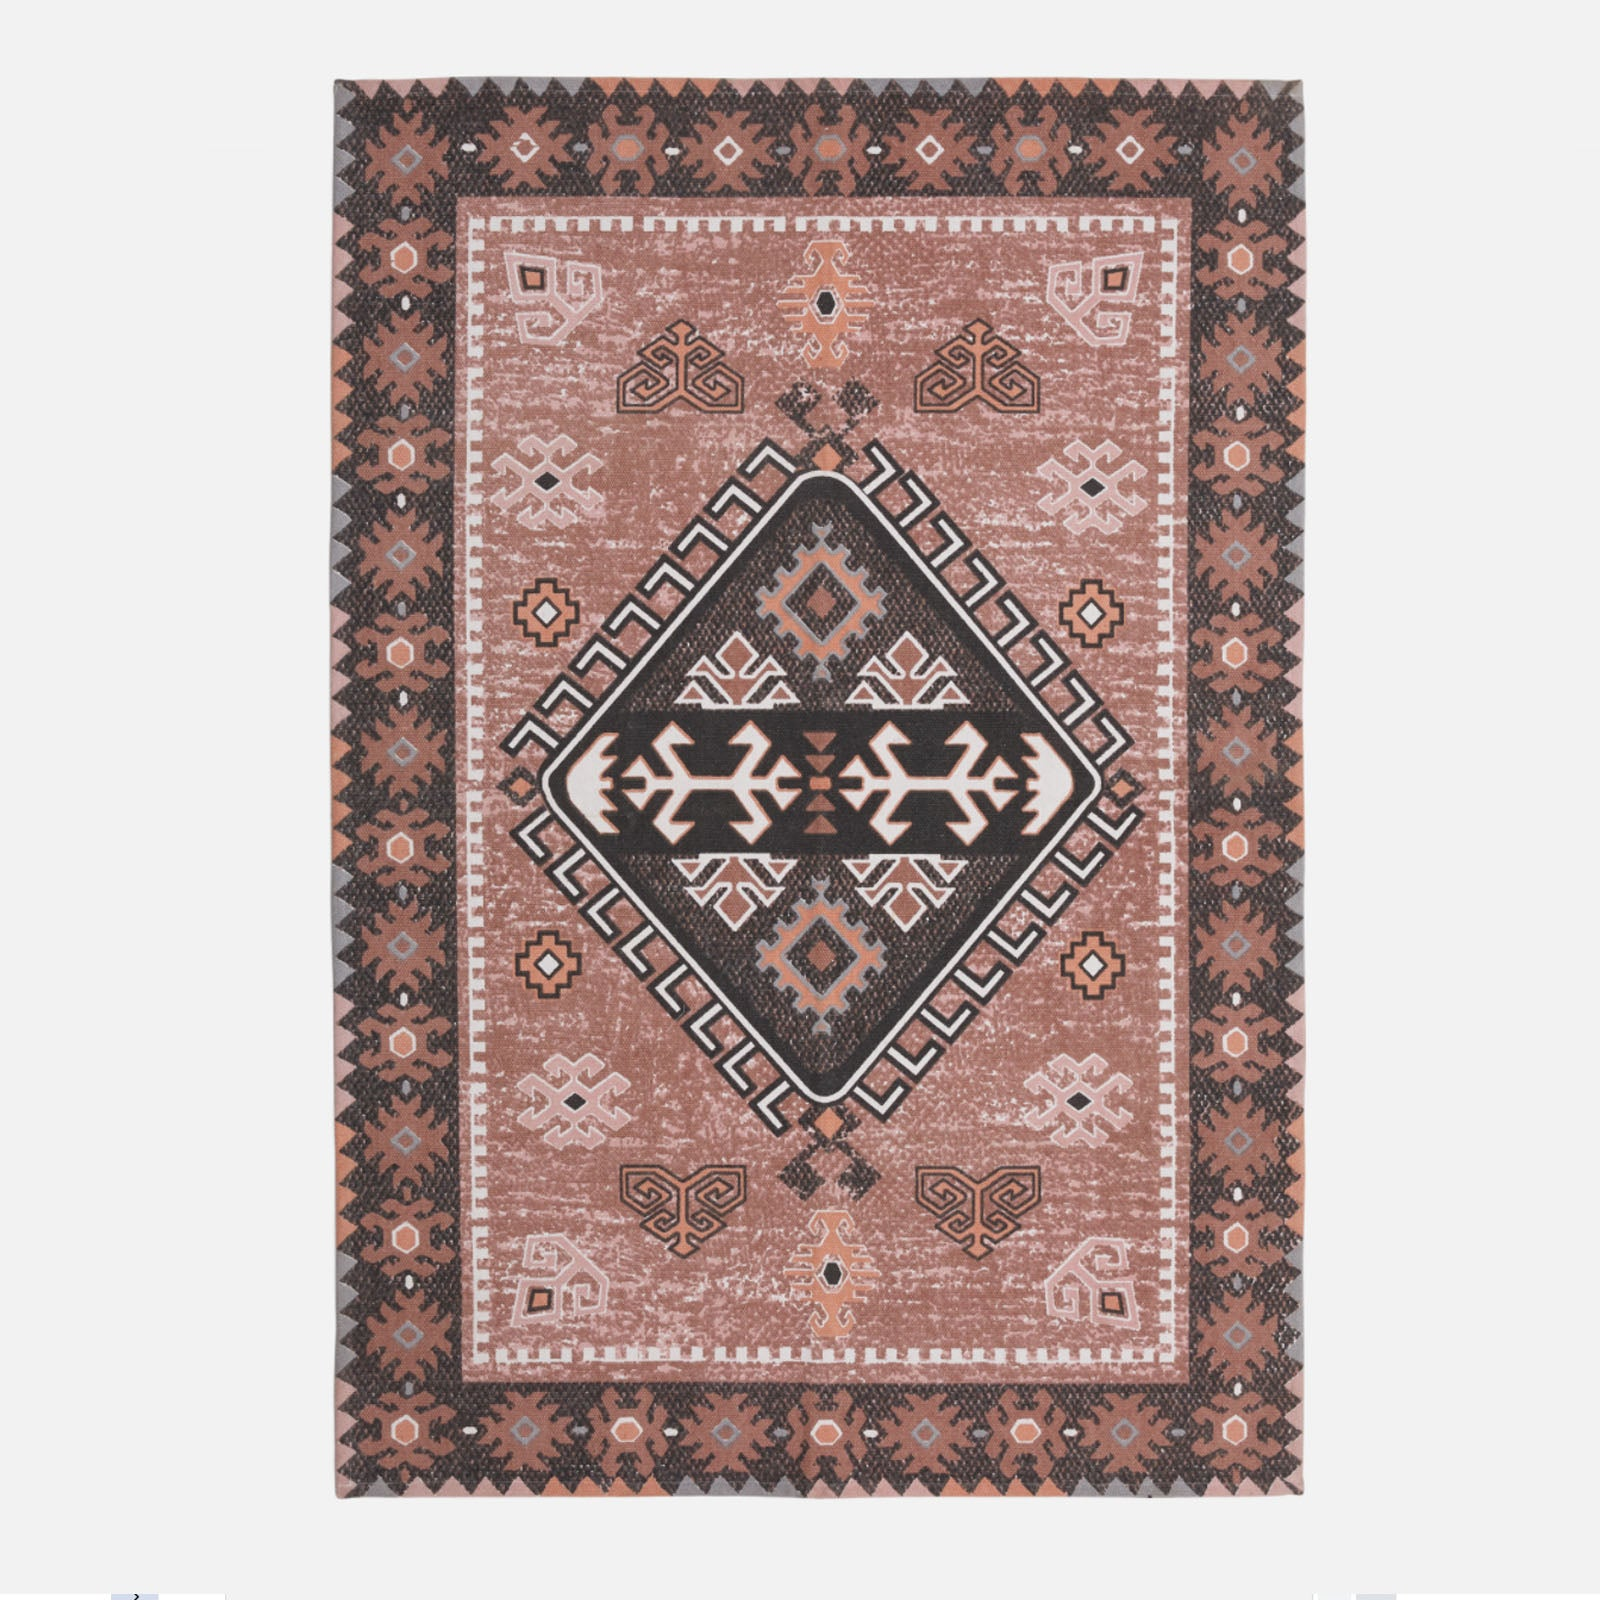 160x230 cm  handmade Wool Rug JH-20523-Pink-L -  سجادة صوف صناعة يدوية 160x230 سم - Shop Online Furniture and Home Decor Store in Dubai, UAE at ebarza